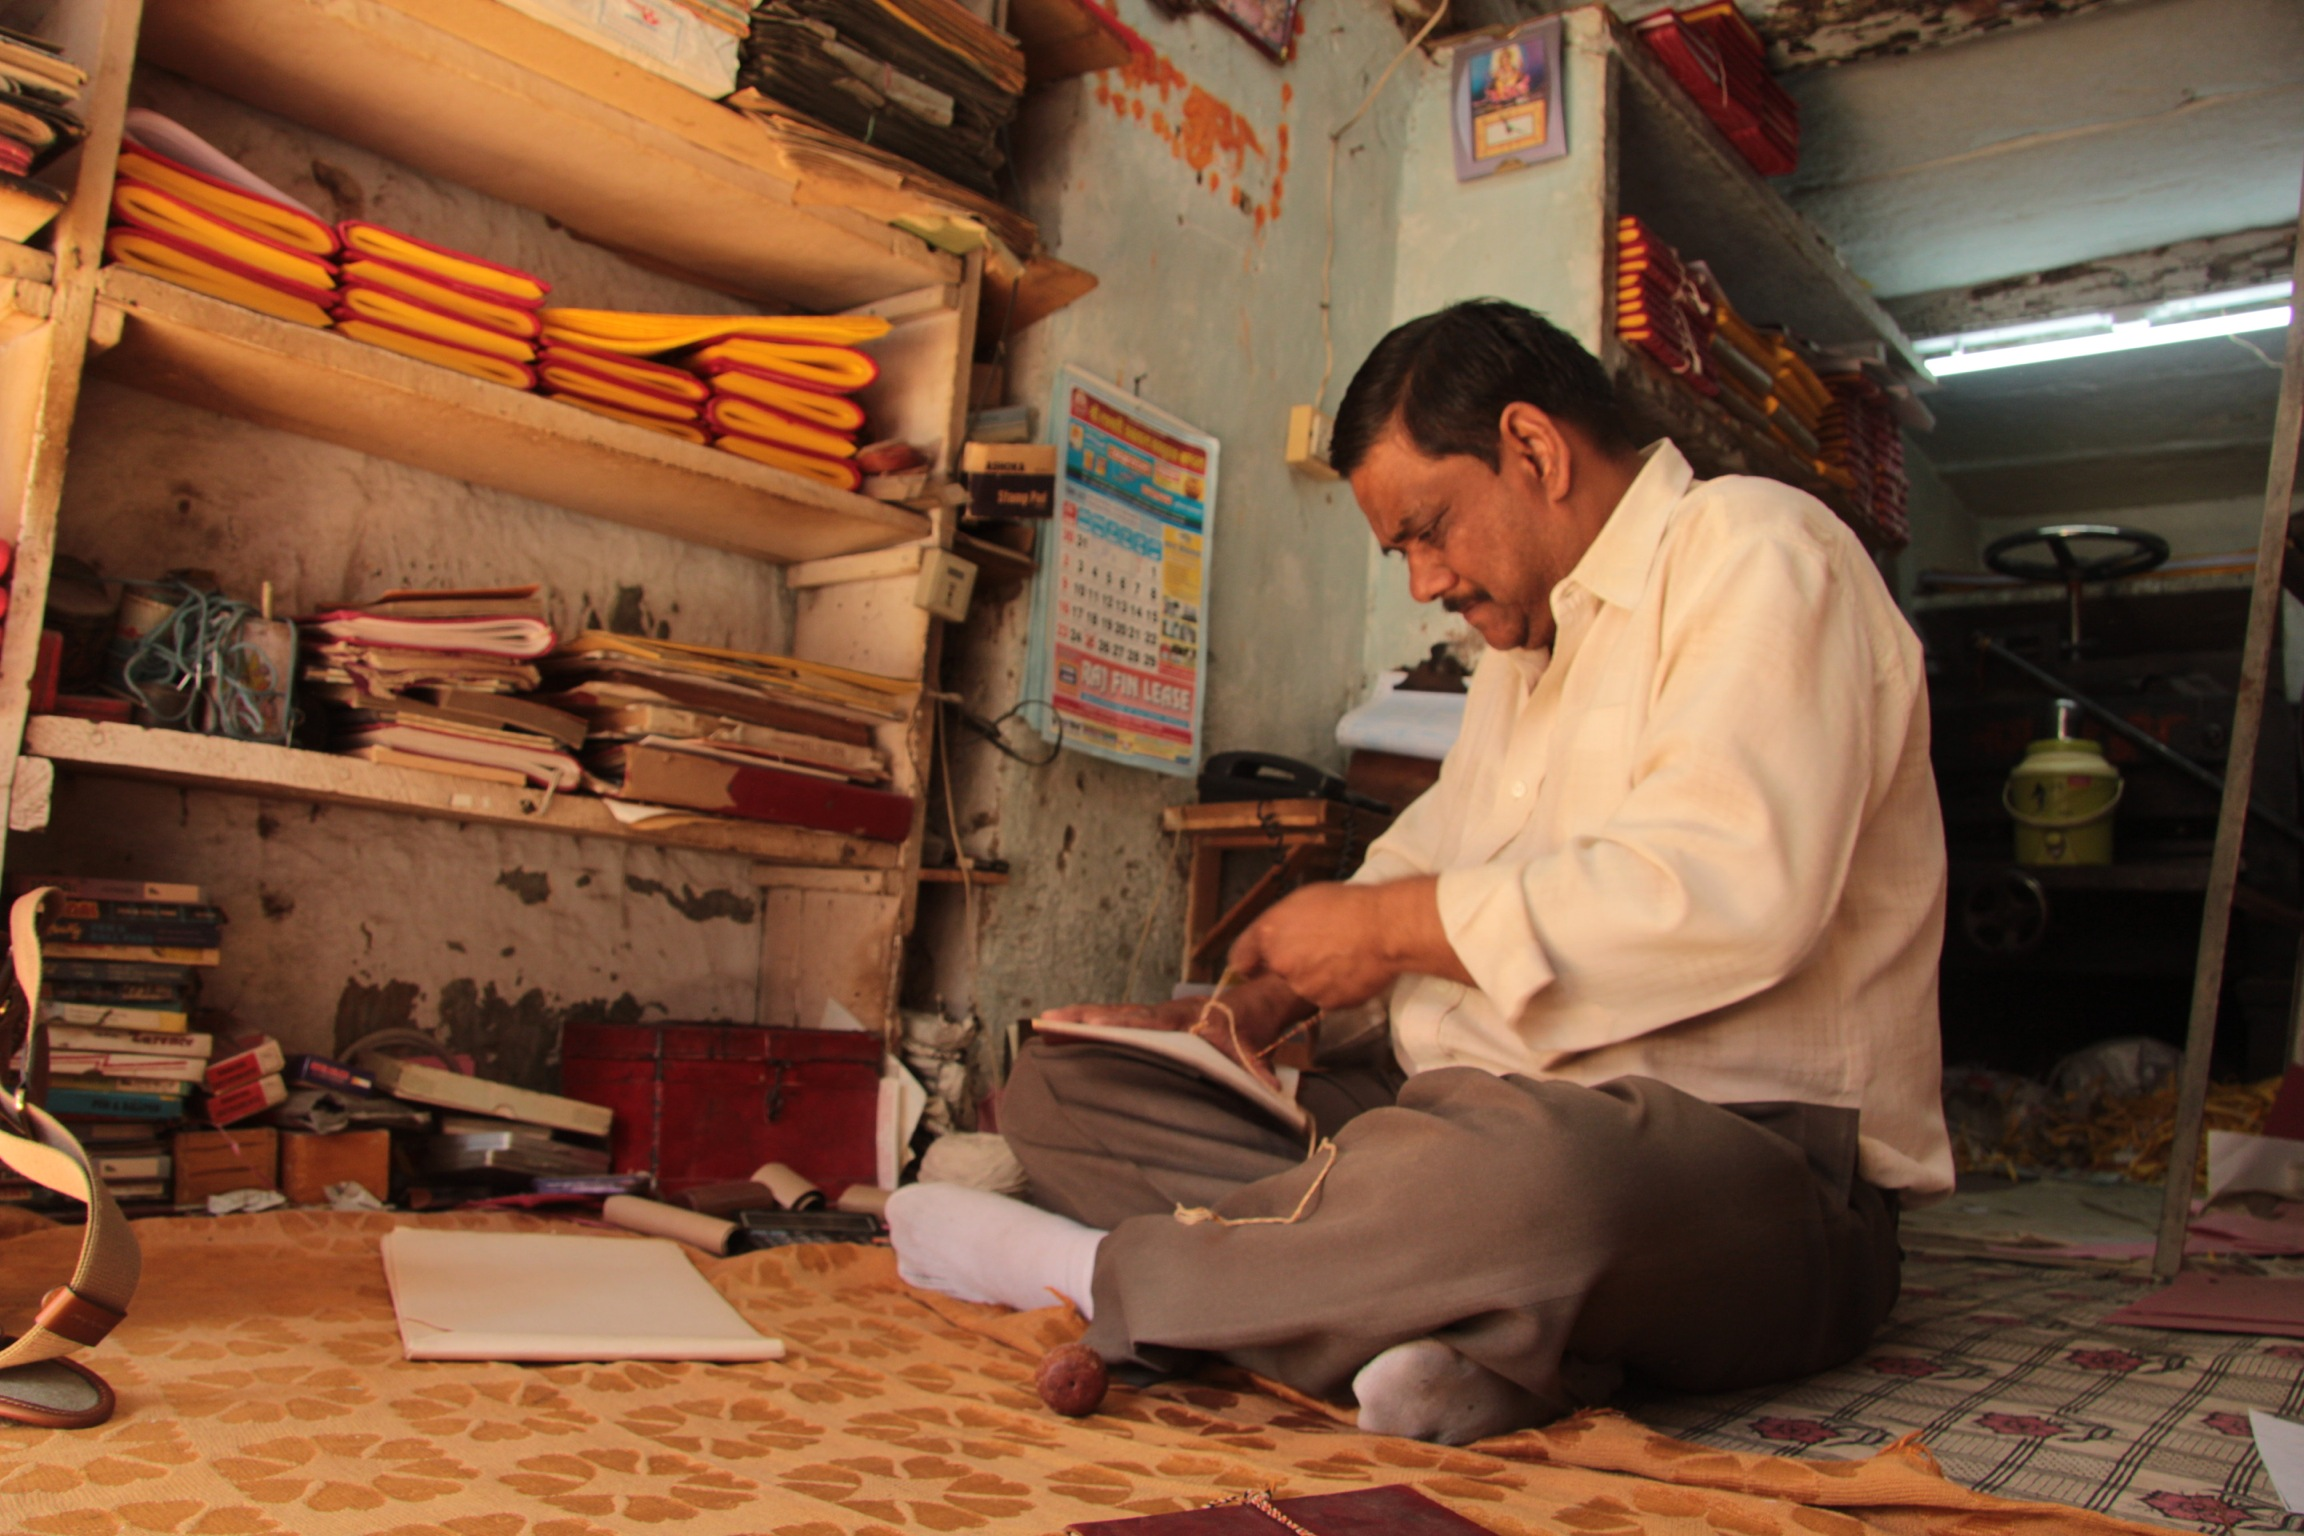 Prayod a bookbinder in Udaipur